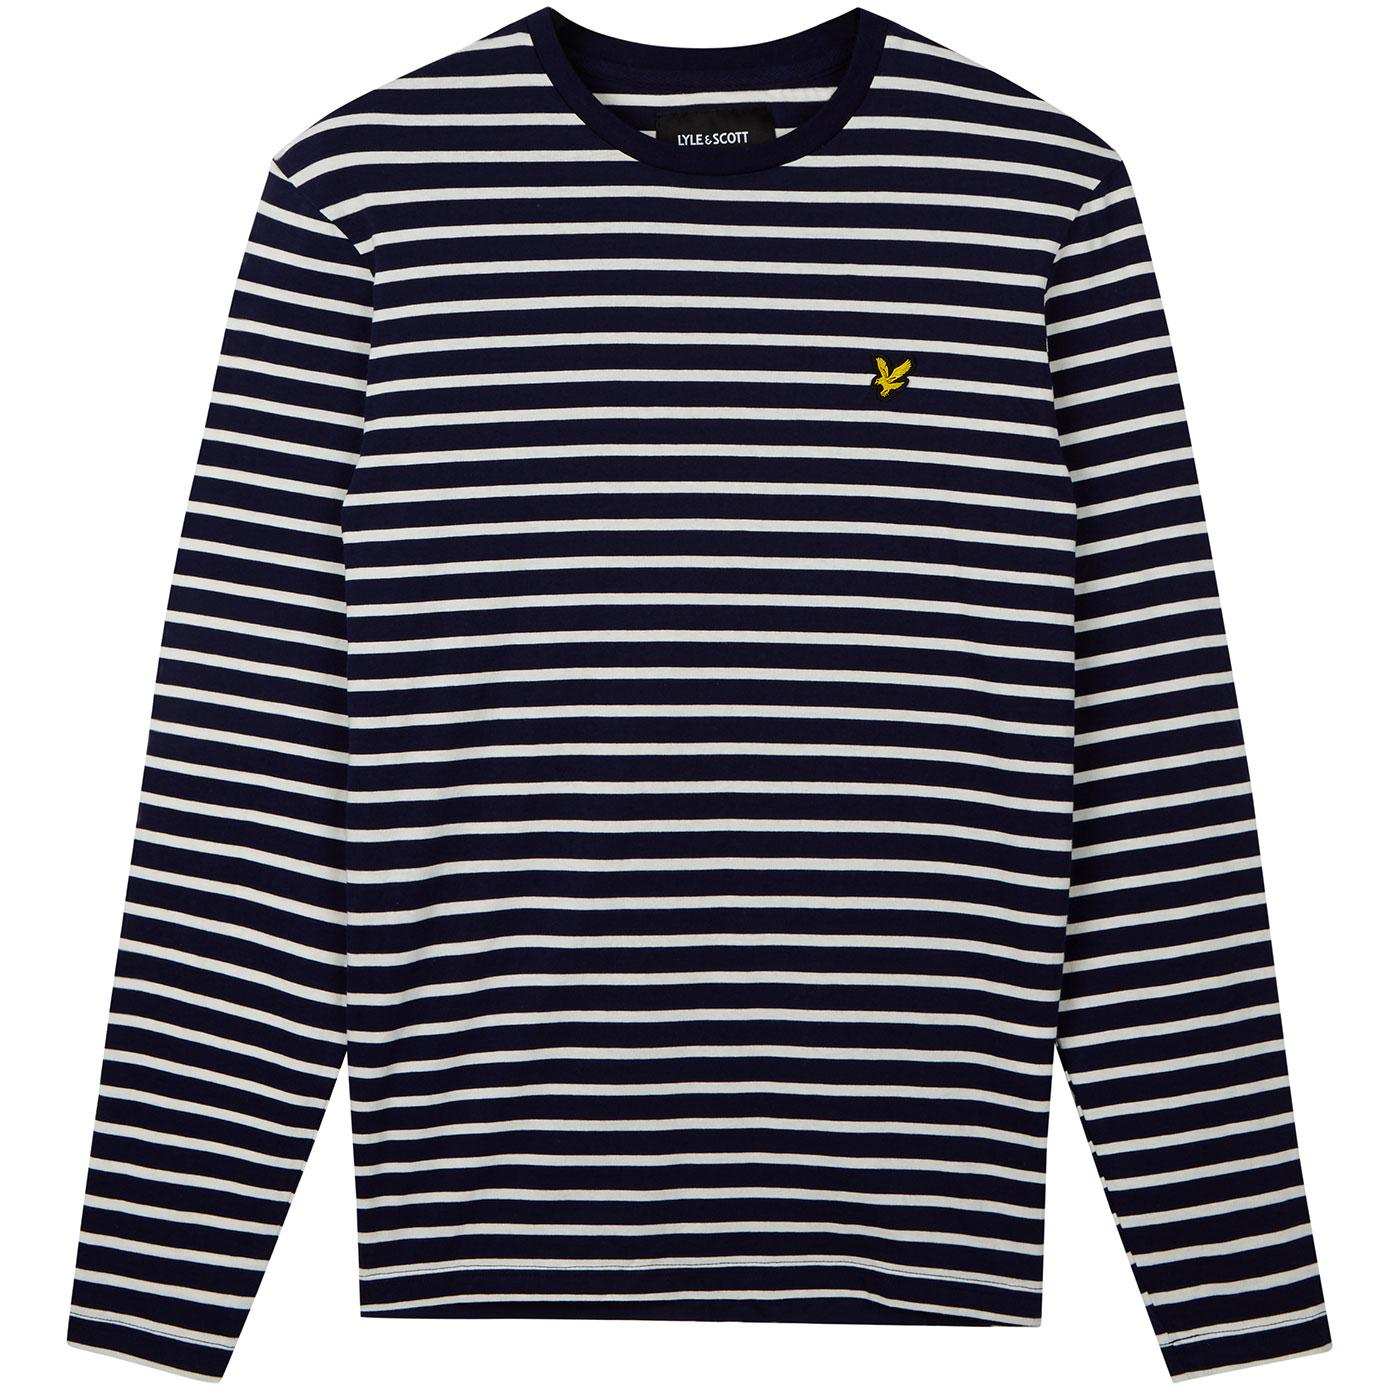 LYLE & SCOTT Retro Mod Long Sleeve Breton Tee NAVY